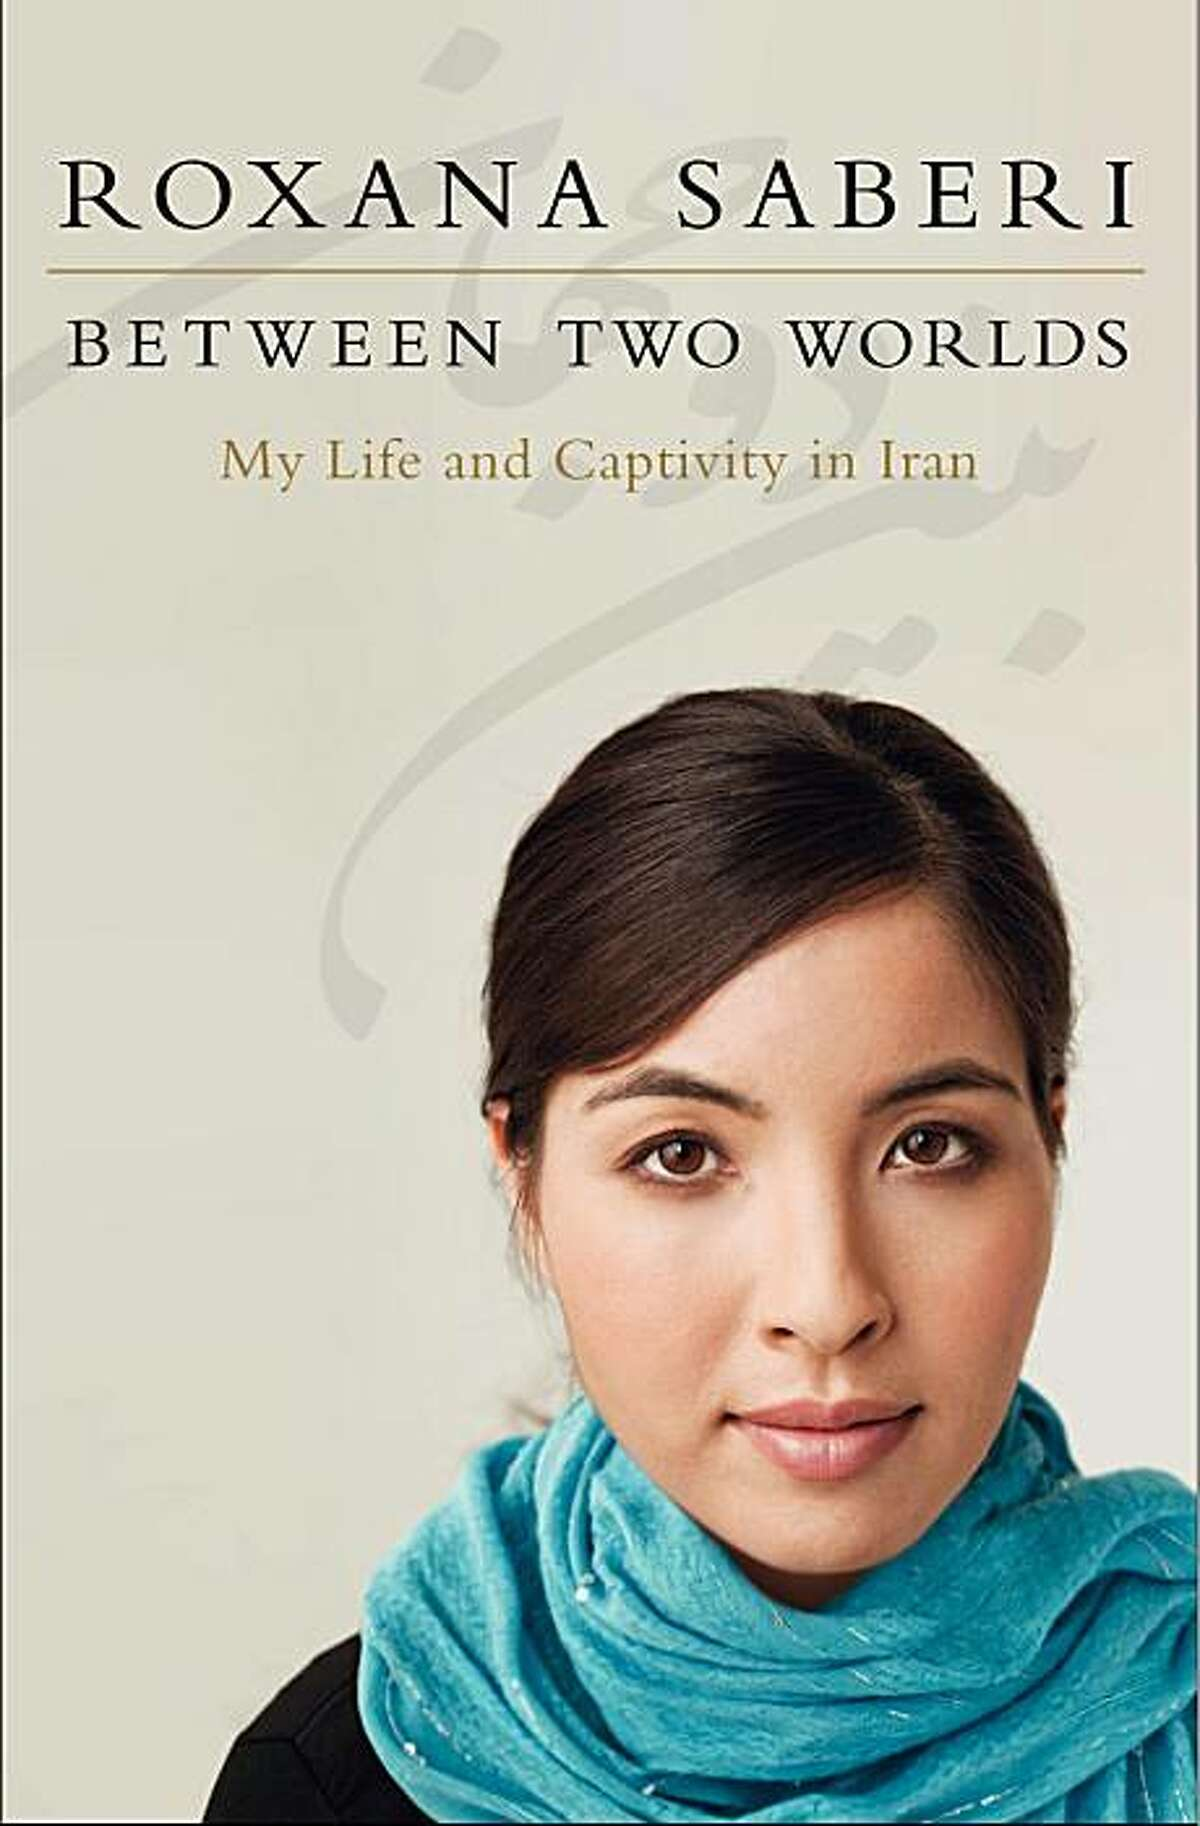 """the cover of roxana saberi's book """"between two worlds"""""""